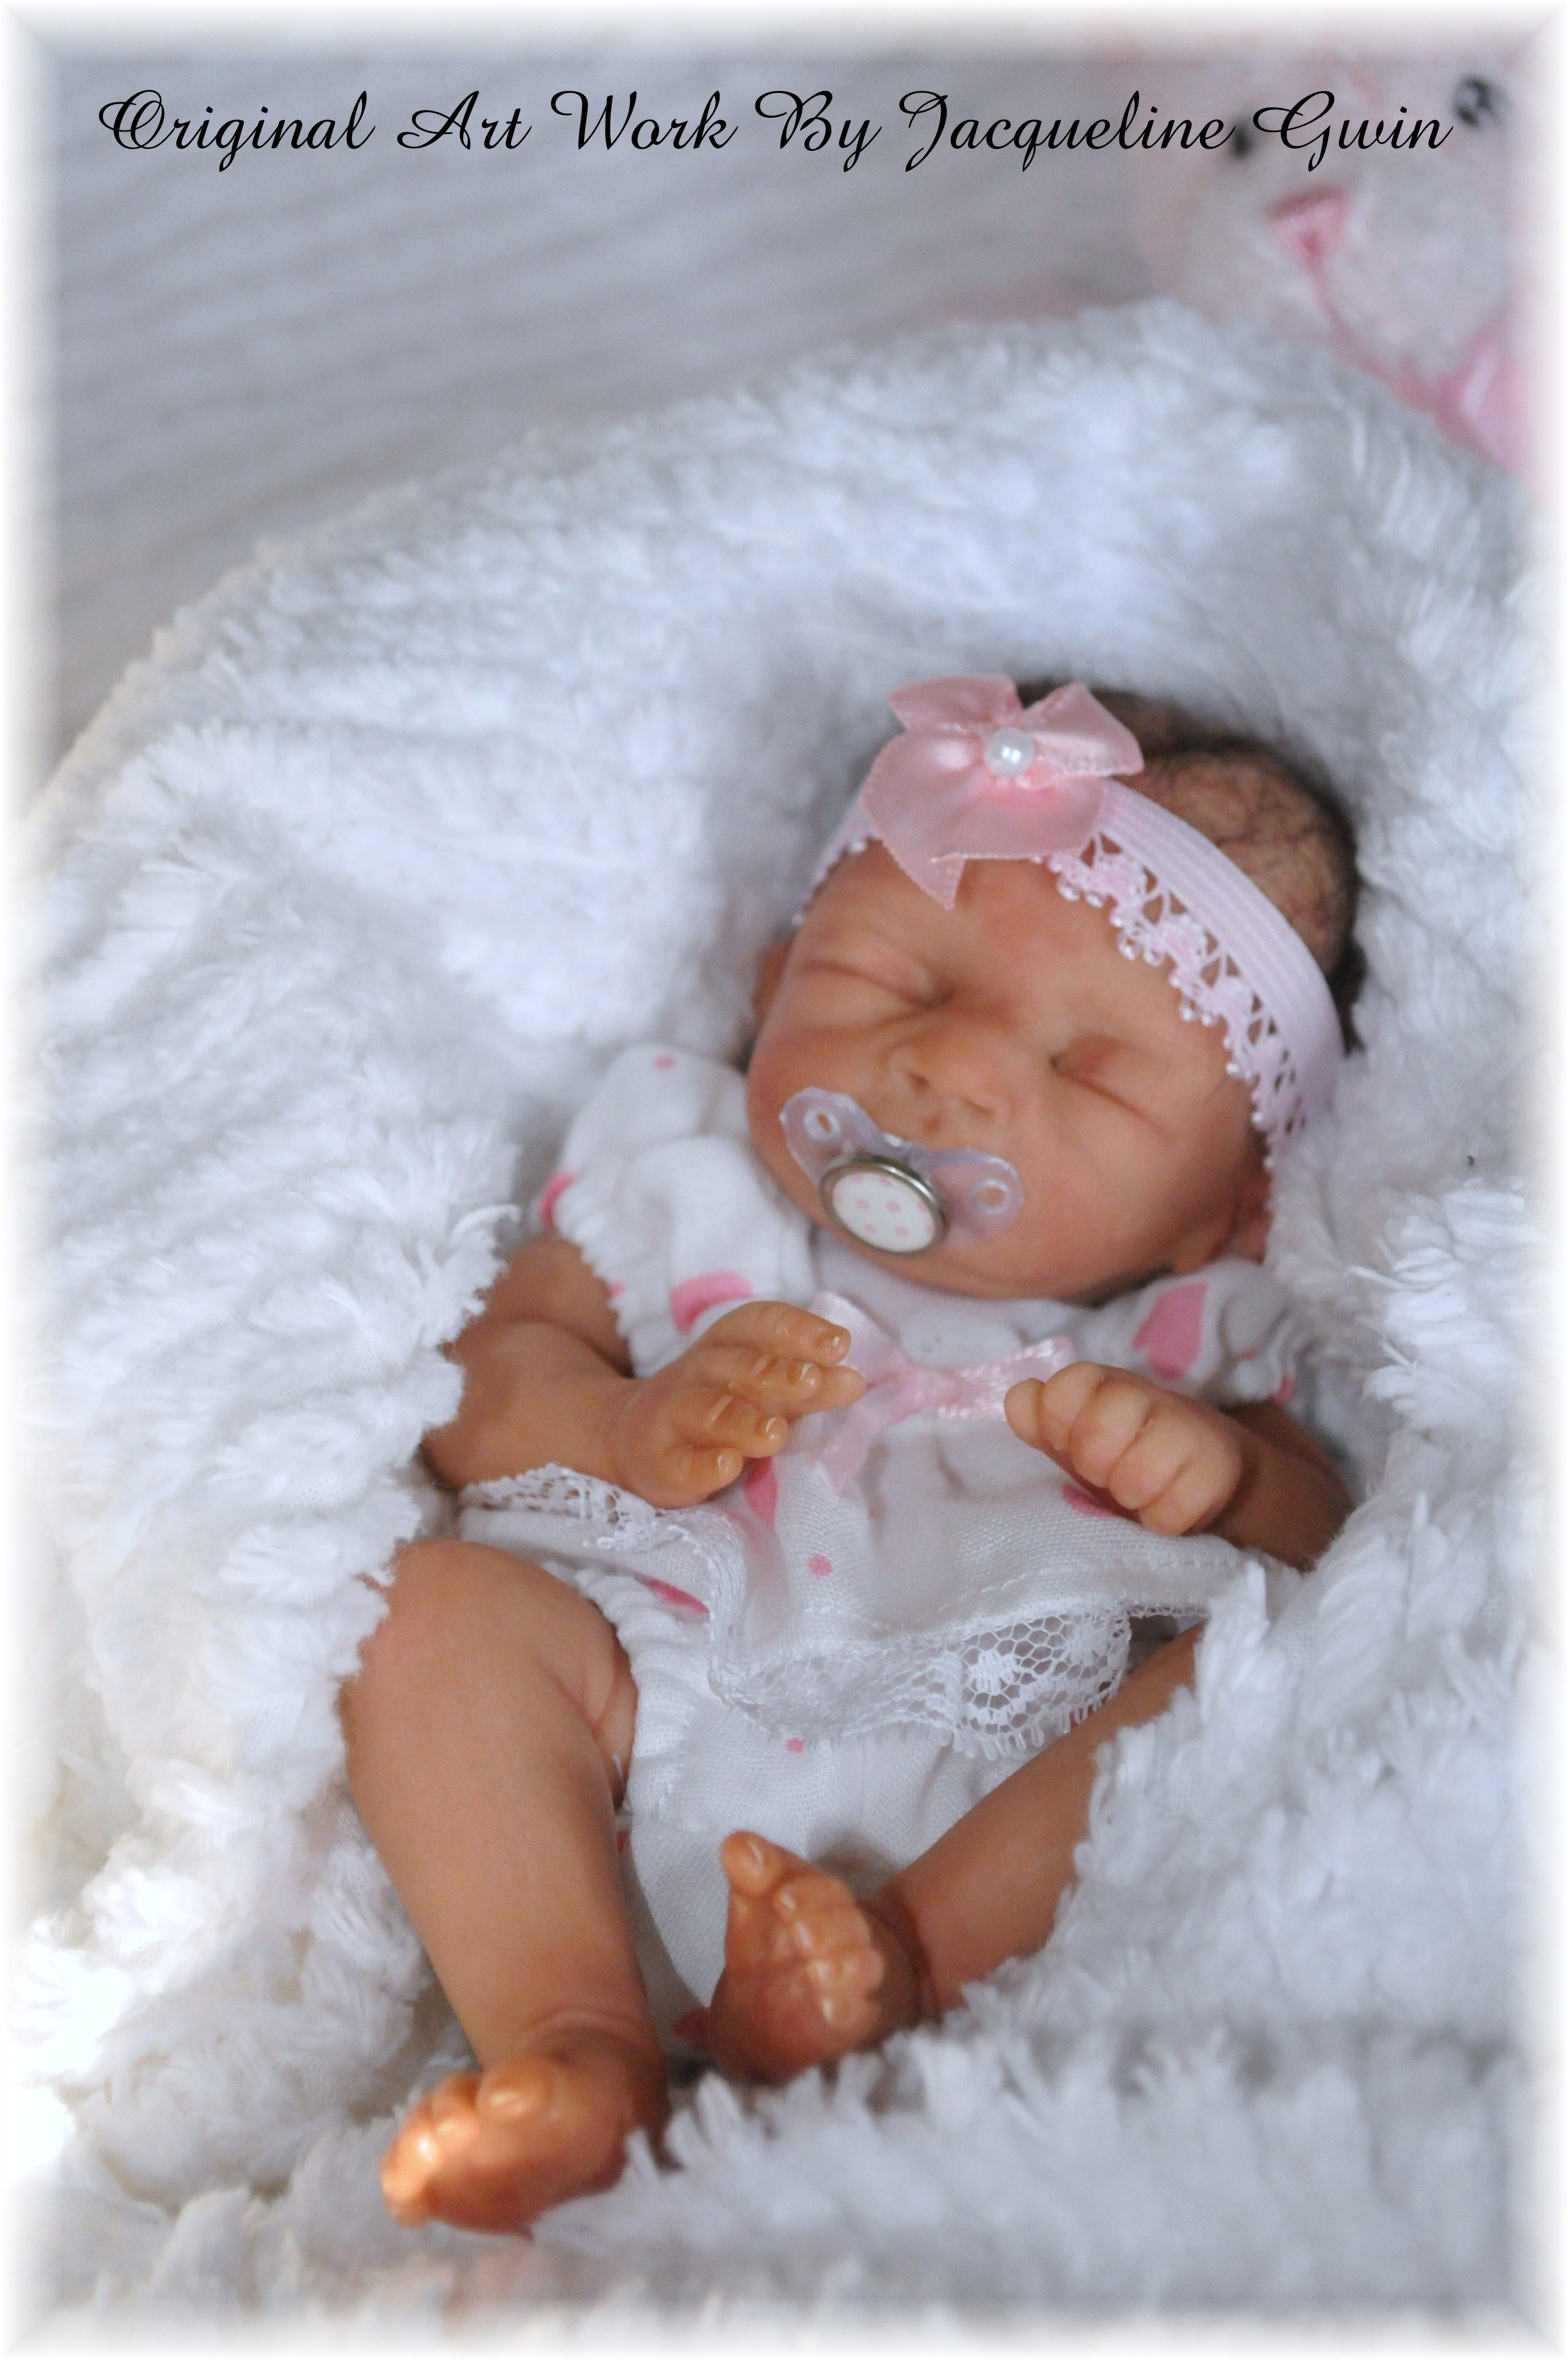 Silicone Baby Jack For Sale : silicone, Solid, Silicone, Dolls, Miniature, Sculpted, Approximately, Inches, Newborn, Dolls,, Sale,, Realistic